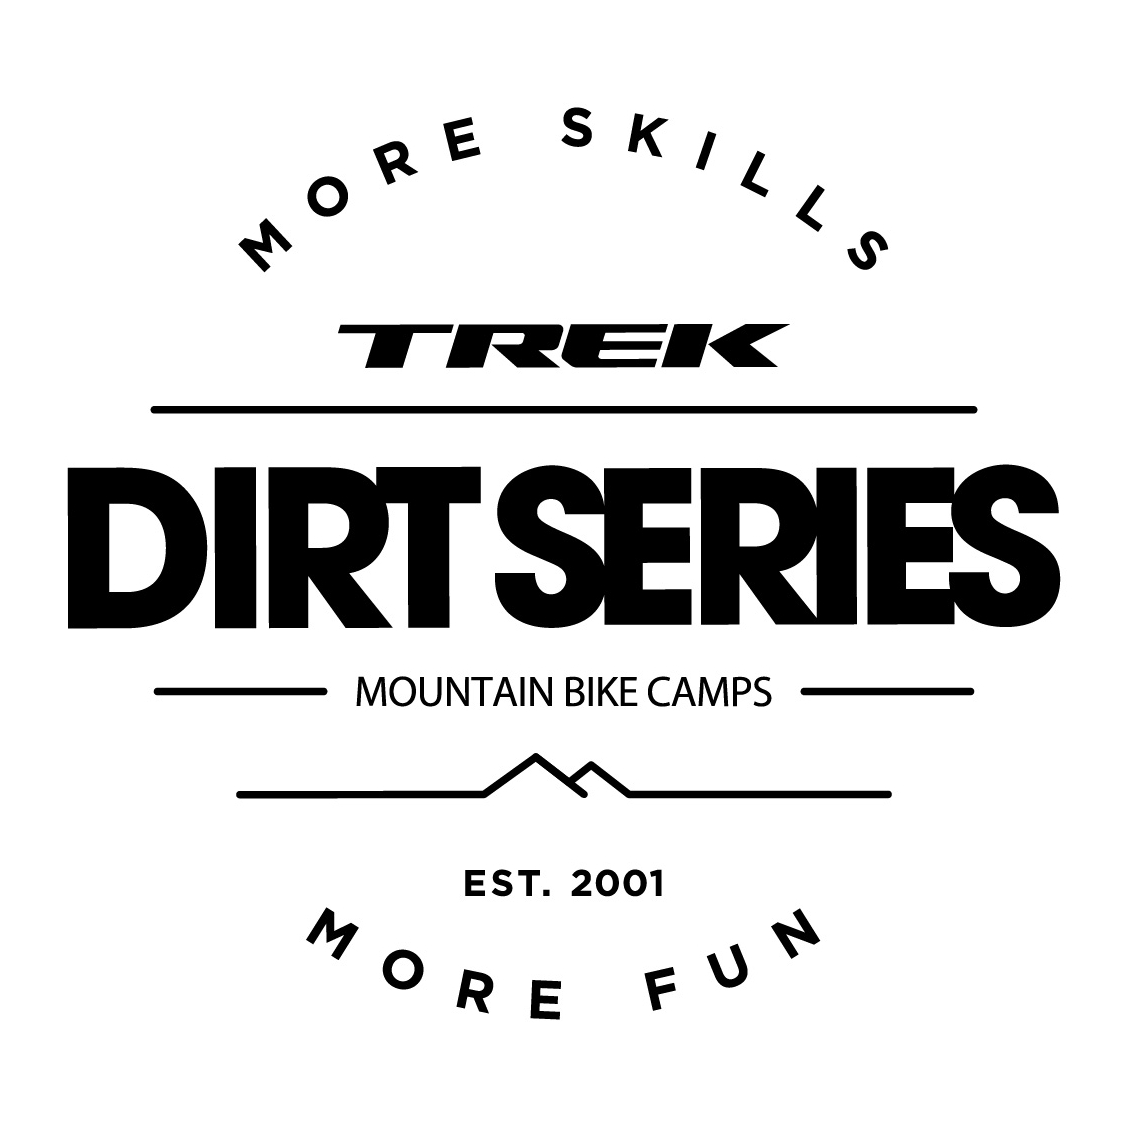 Dirt Series Mountain Bike Camp - Park City, UT